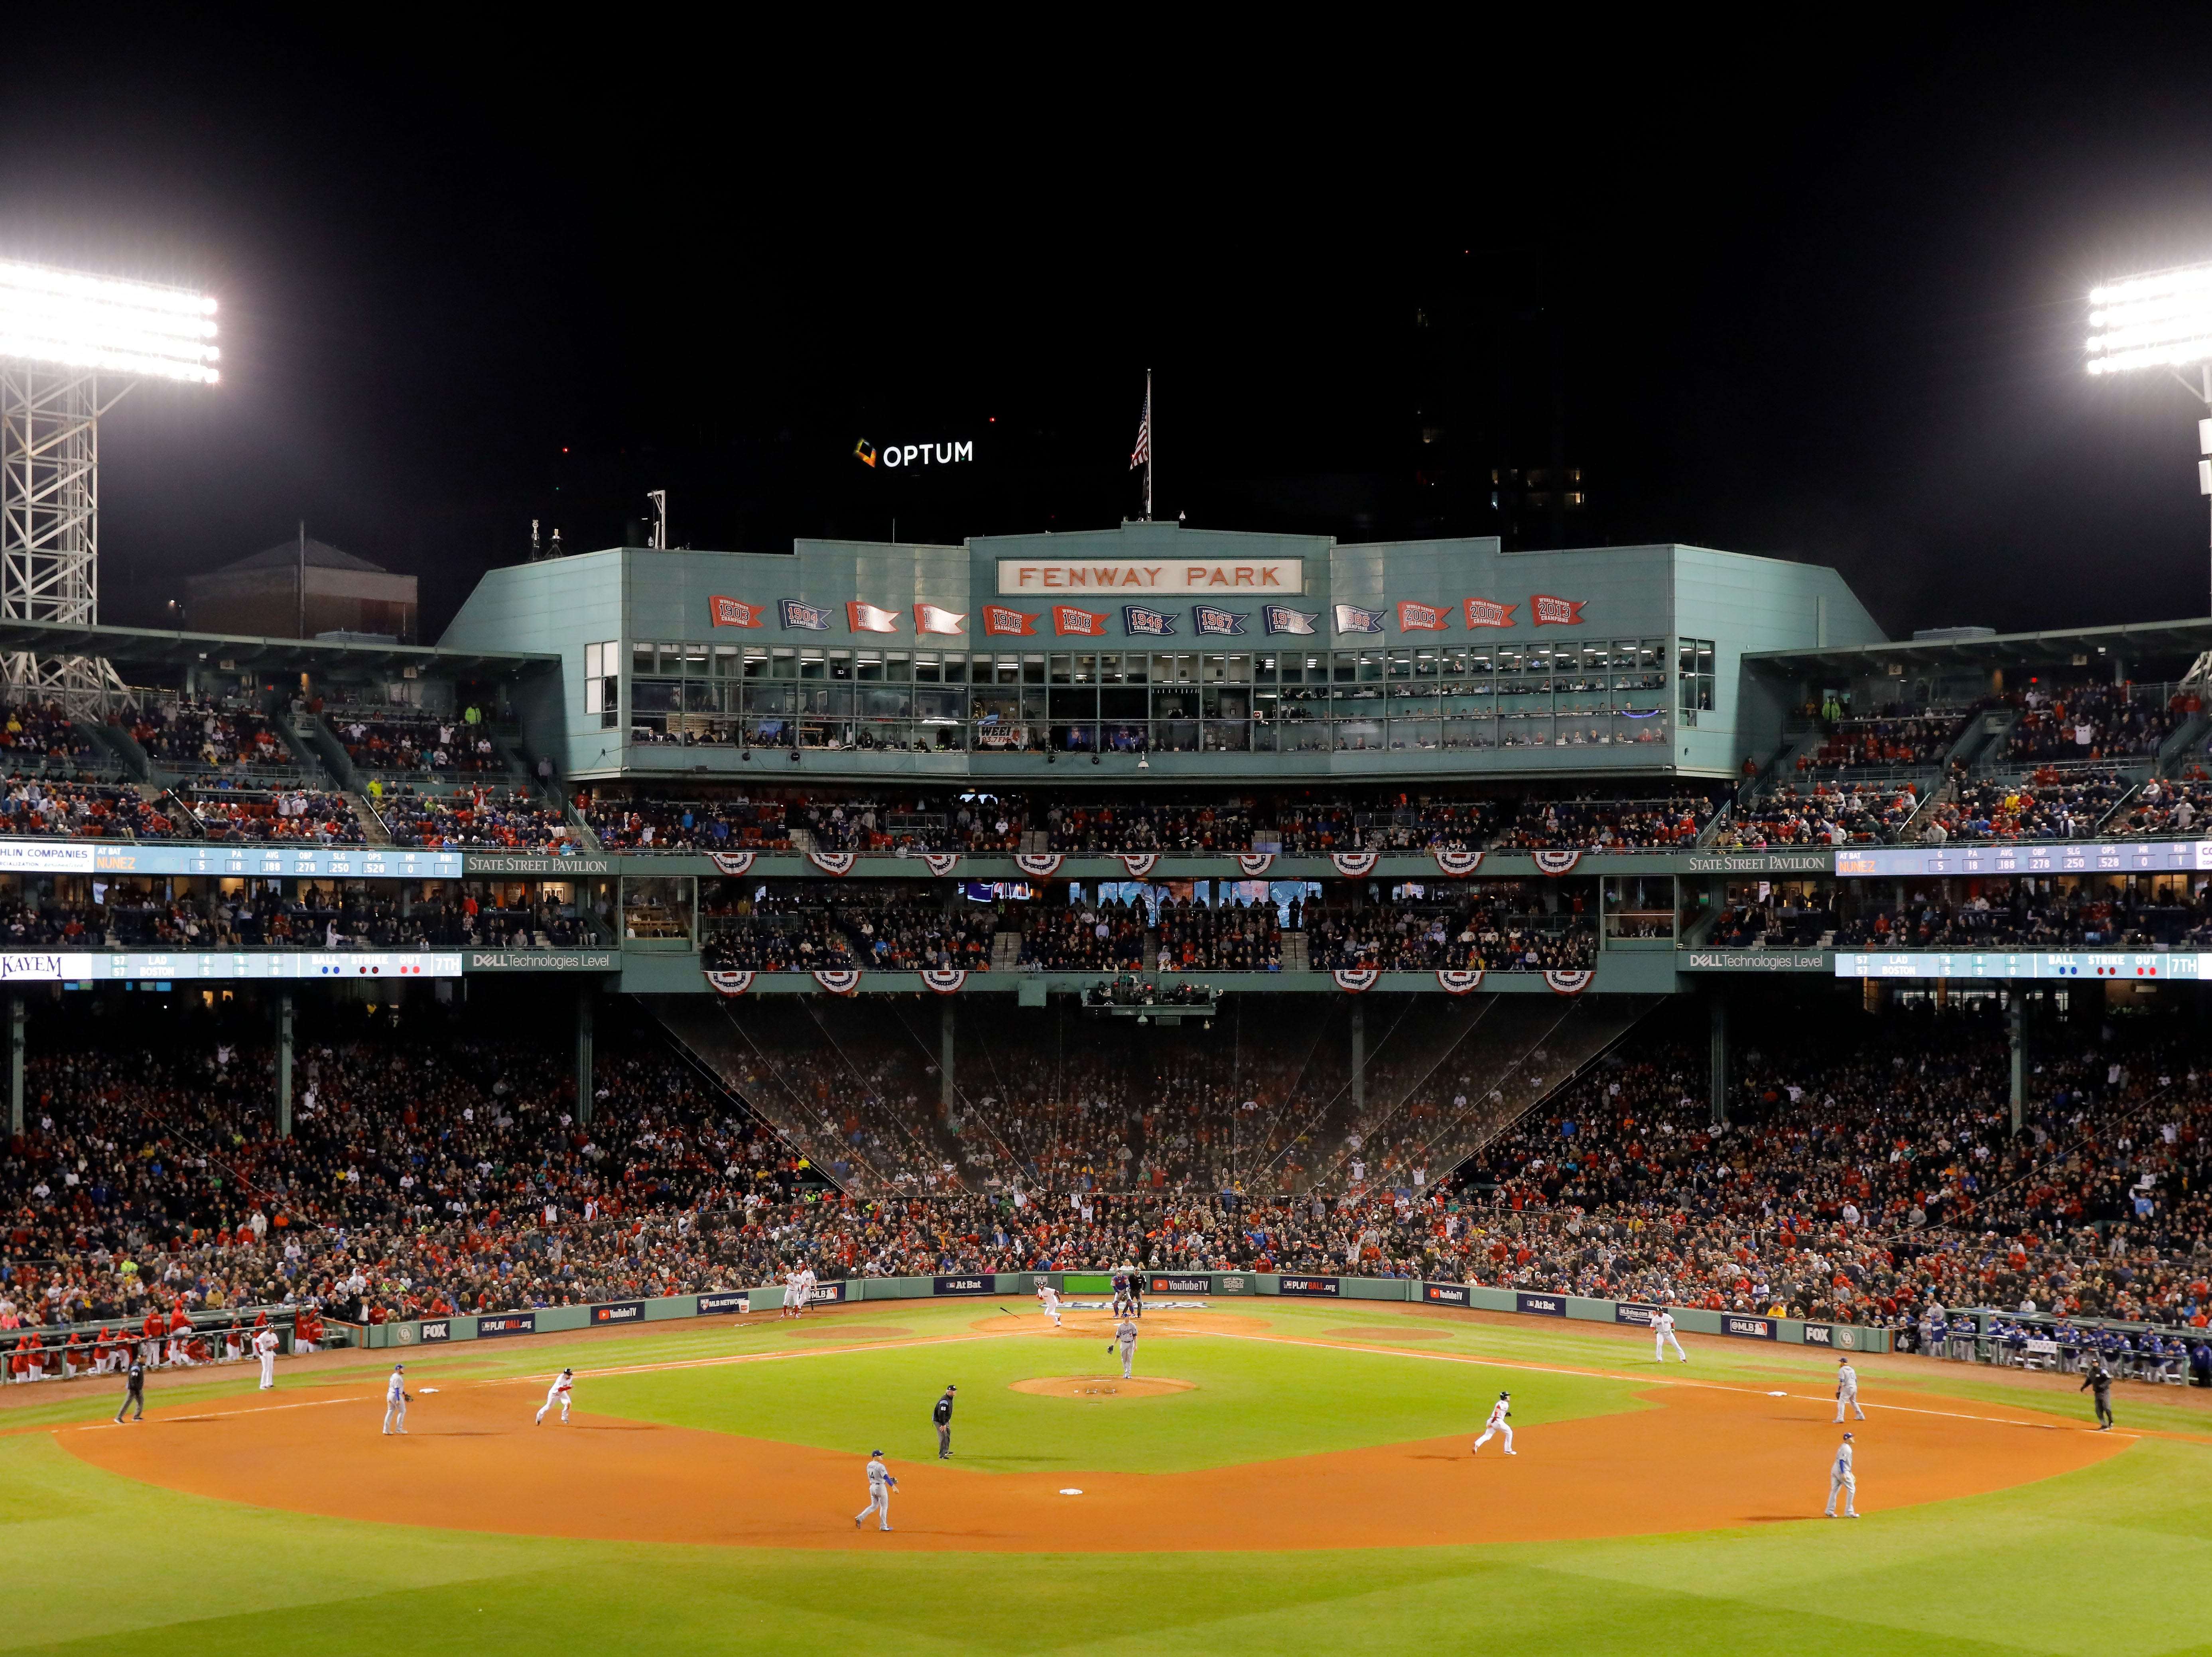 Game 1 at Fenway Park: A view of the stadium on Eduardo Nunez's homer in the seventh.